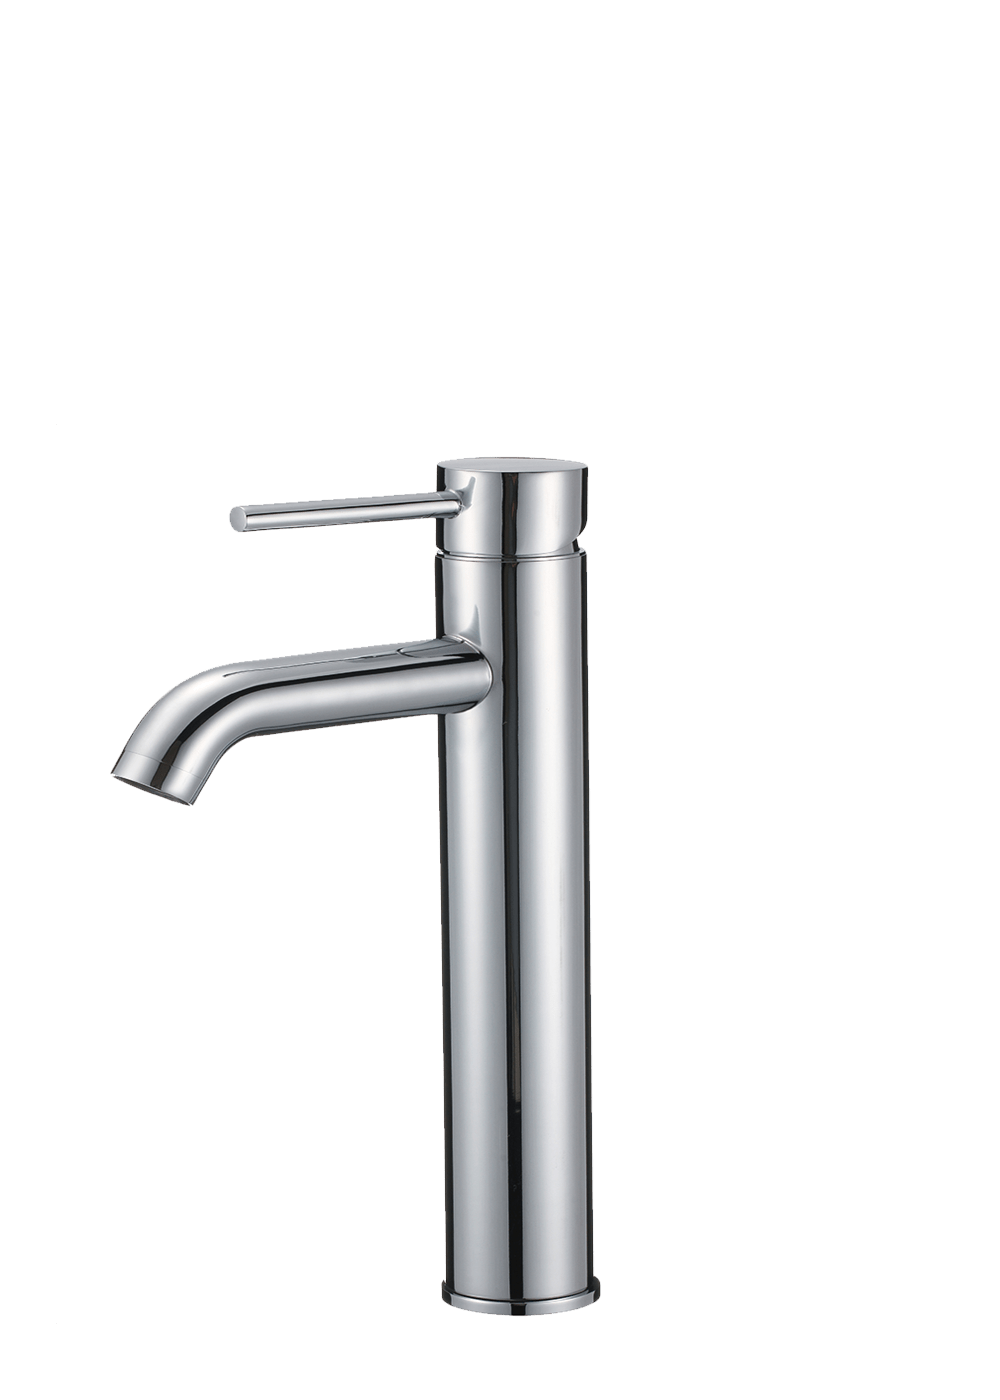 Bosconi F-S02 Single Hole Deckmount Bathroom Faucet in Polished Chrome